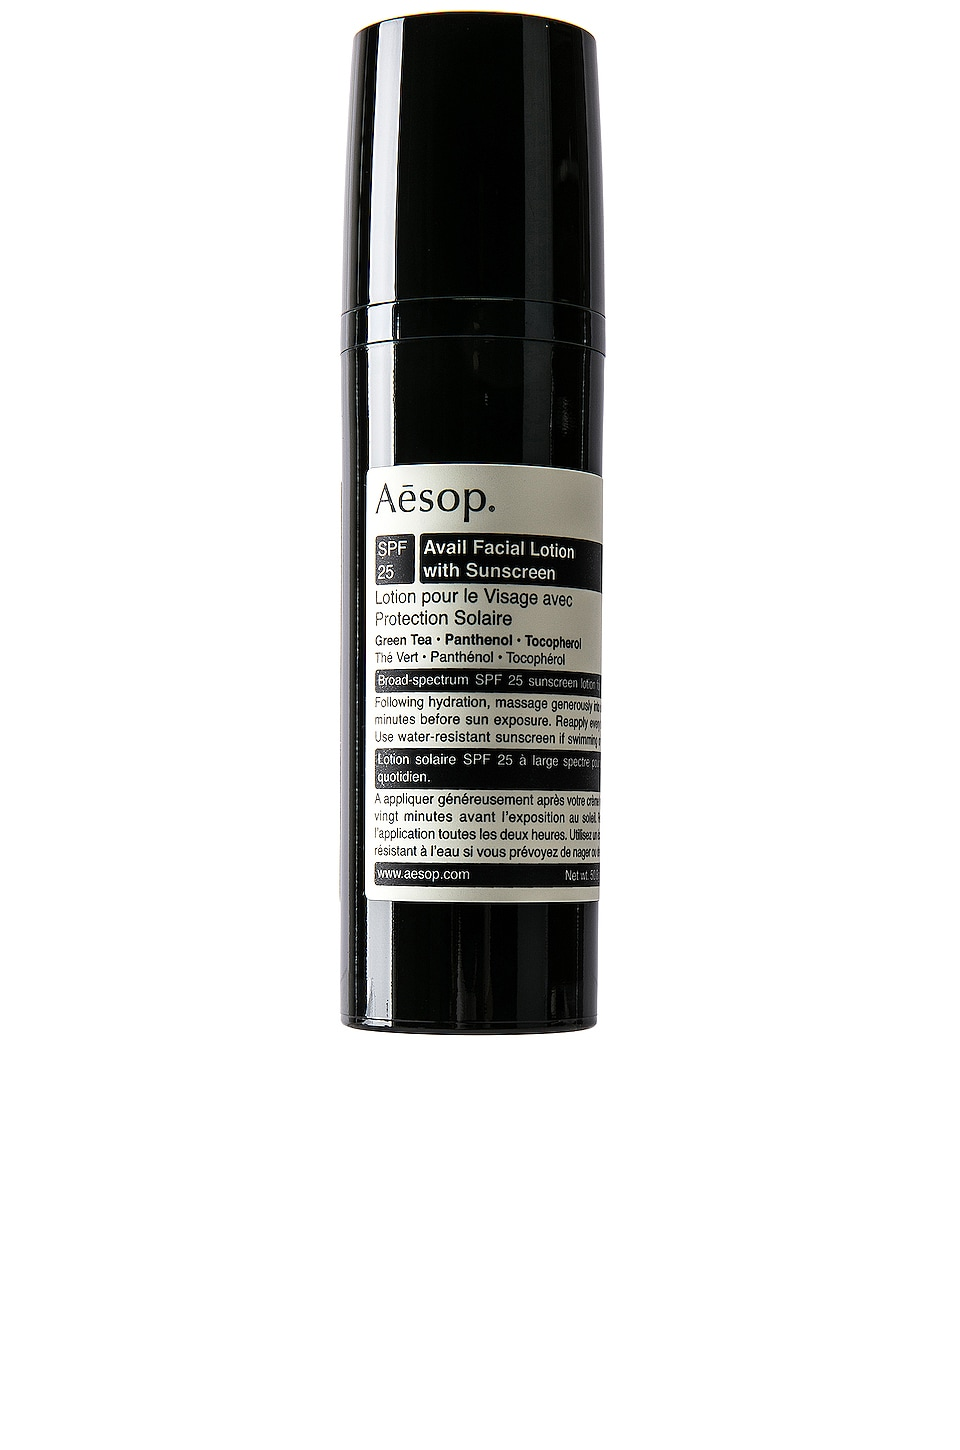 Aesop Avail Facial Lotion with Sunscreen